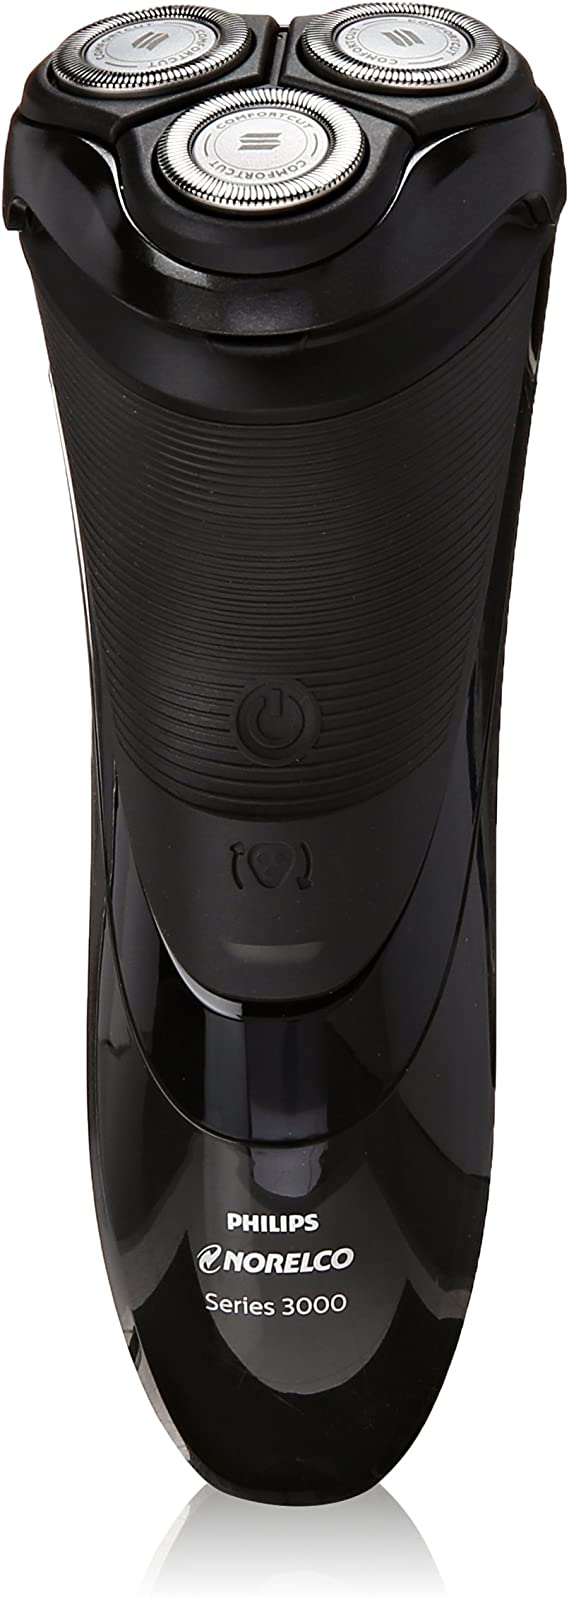 Philips Norelco Shaver 3100 Rechargeable Electric Shaver with Pop-up Trimmer